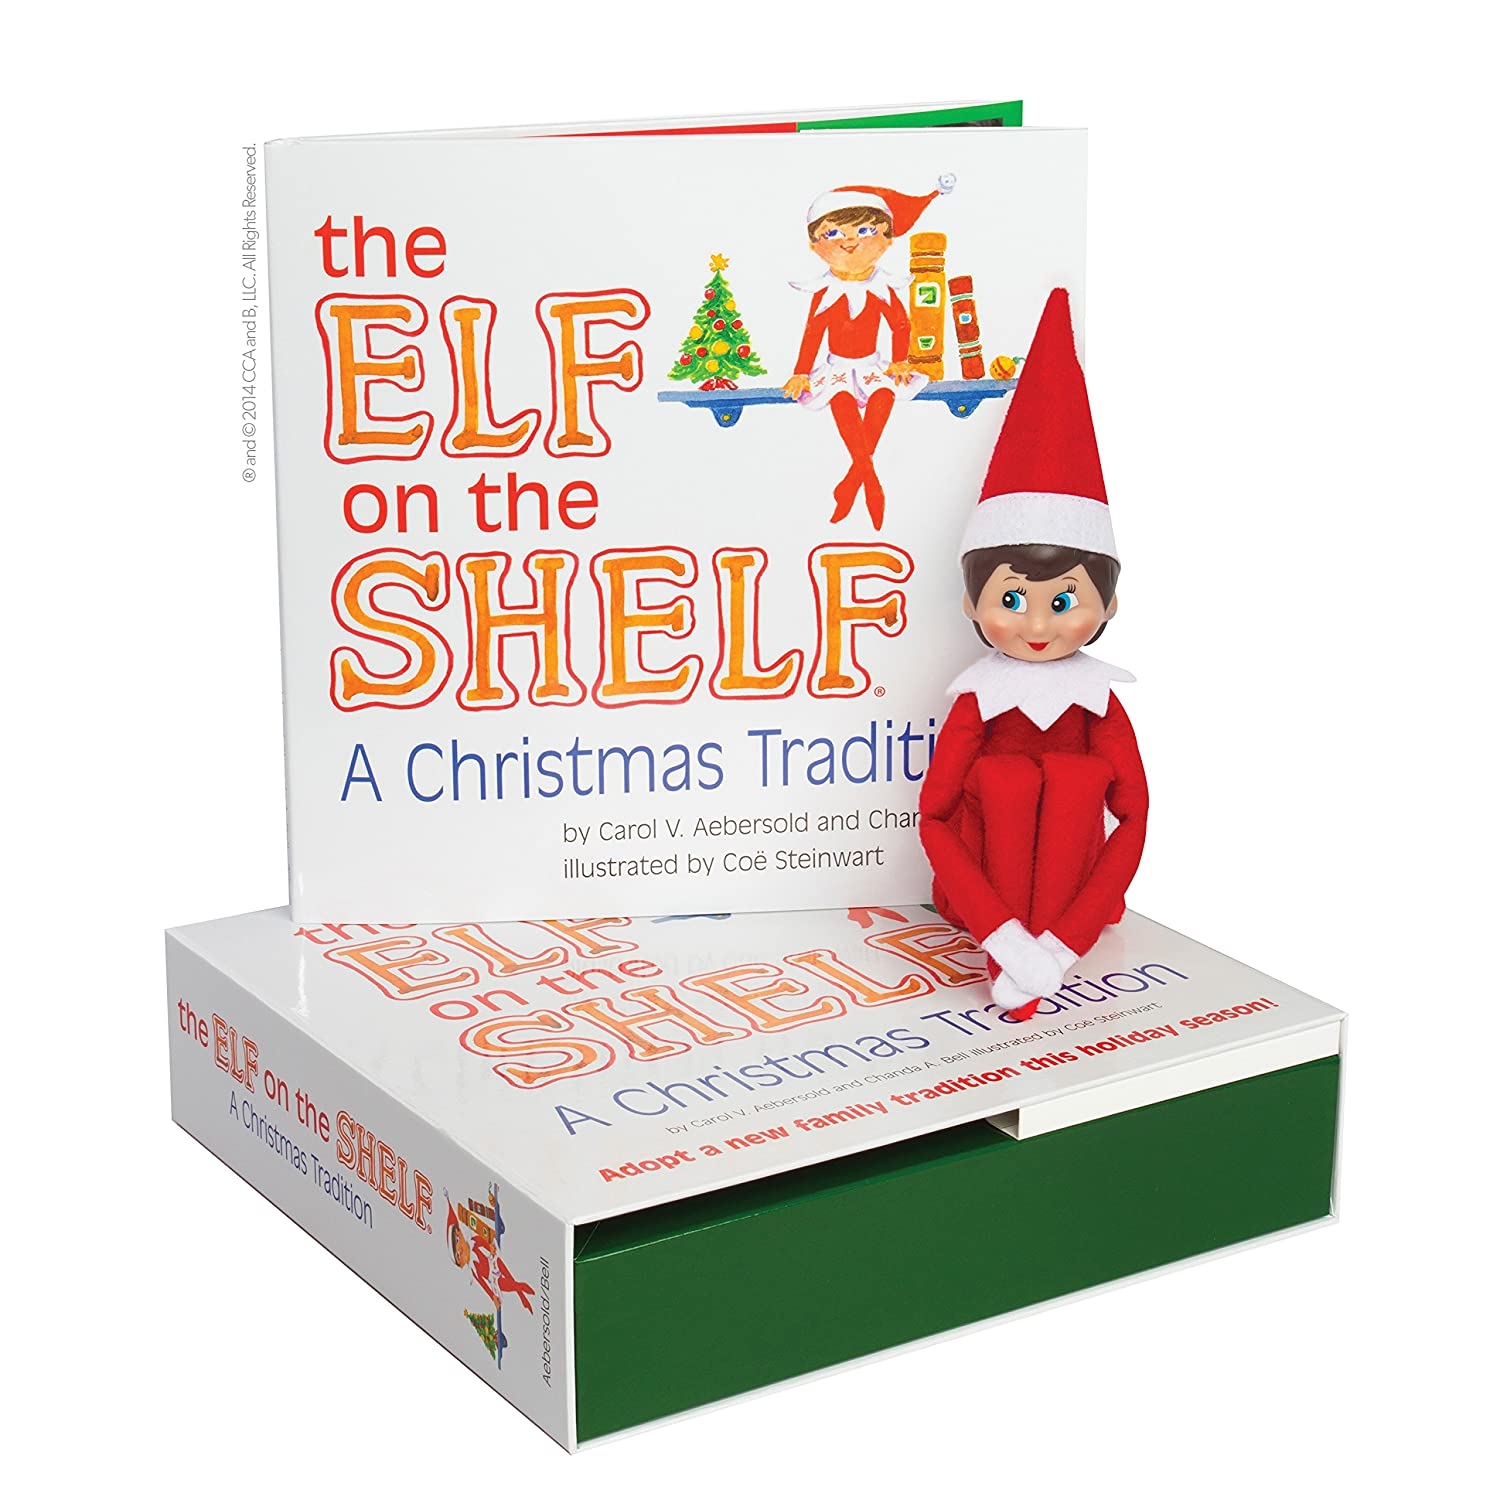 The Elf on the Shelf: A Christmas Tradition (includes blue-eyed girl scout elf) Coe Steinwart EOTGIRL Childrens Books/Nonfiction